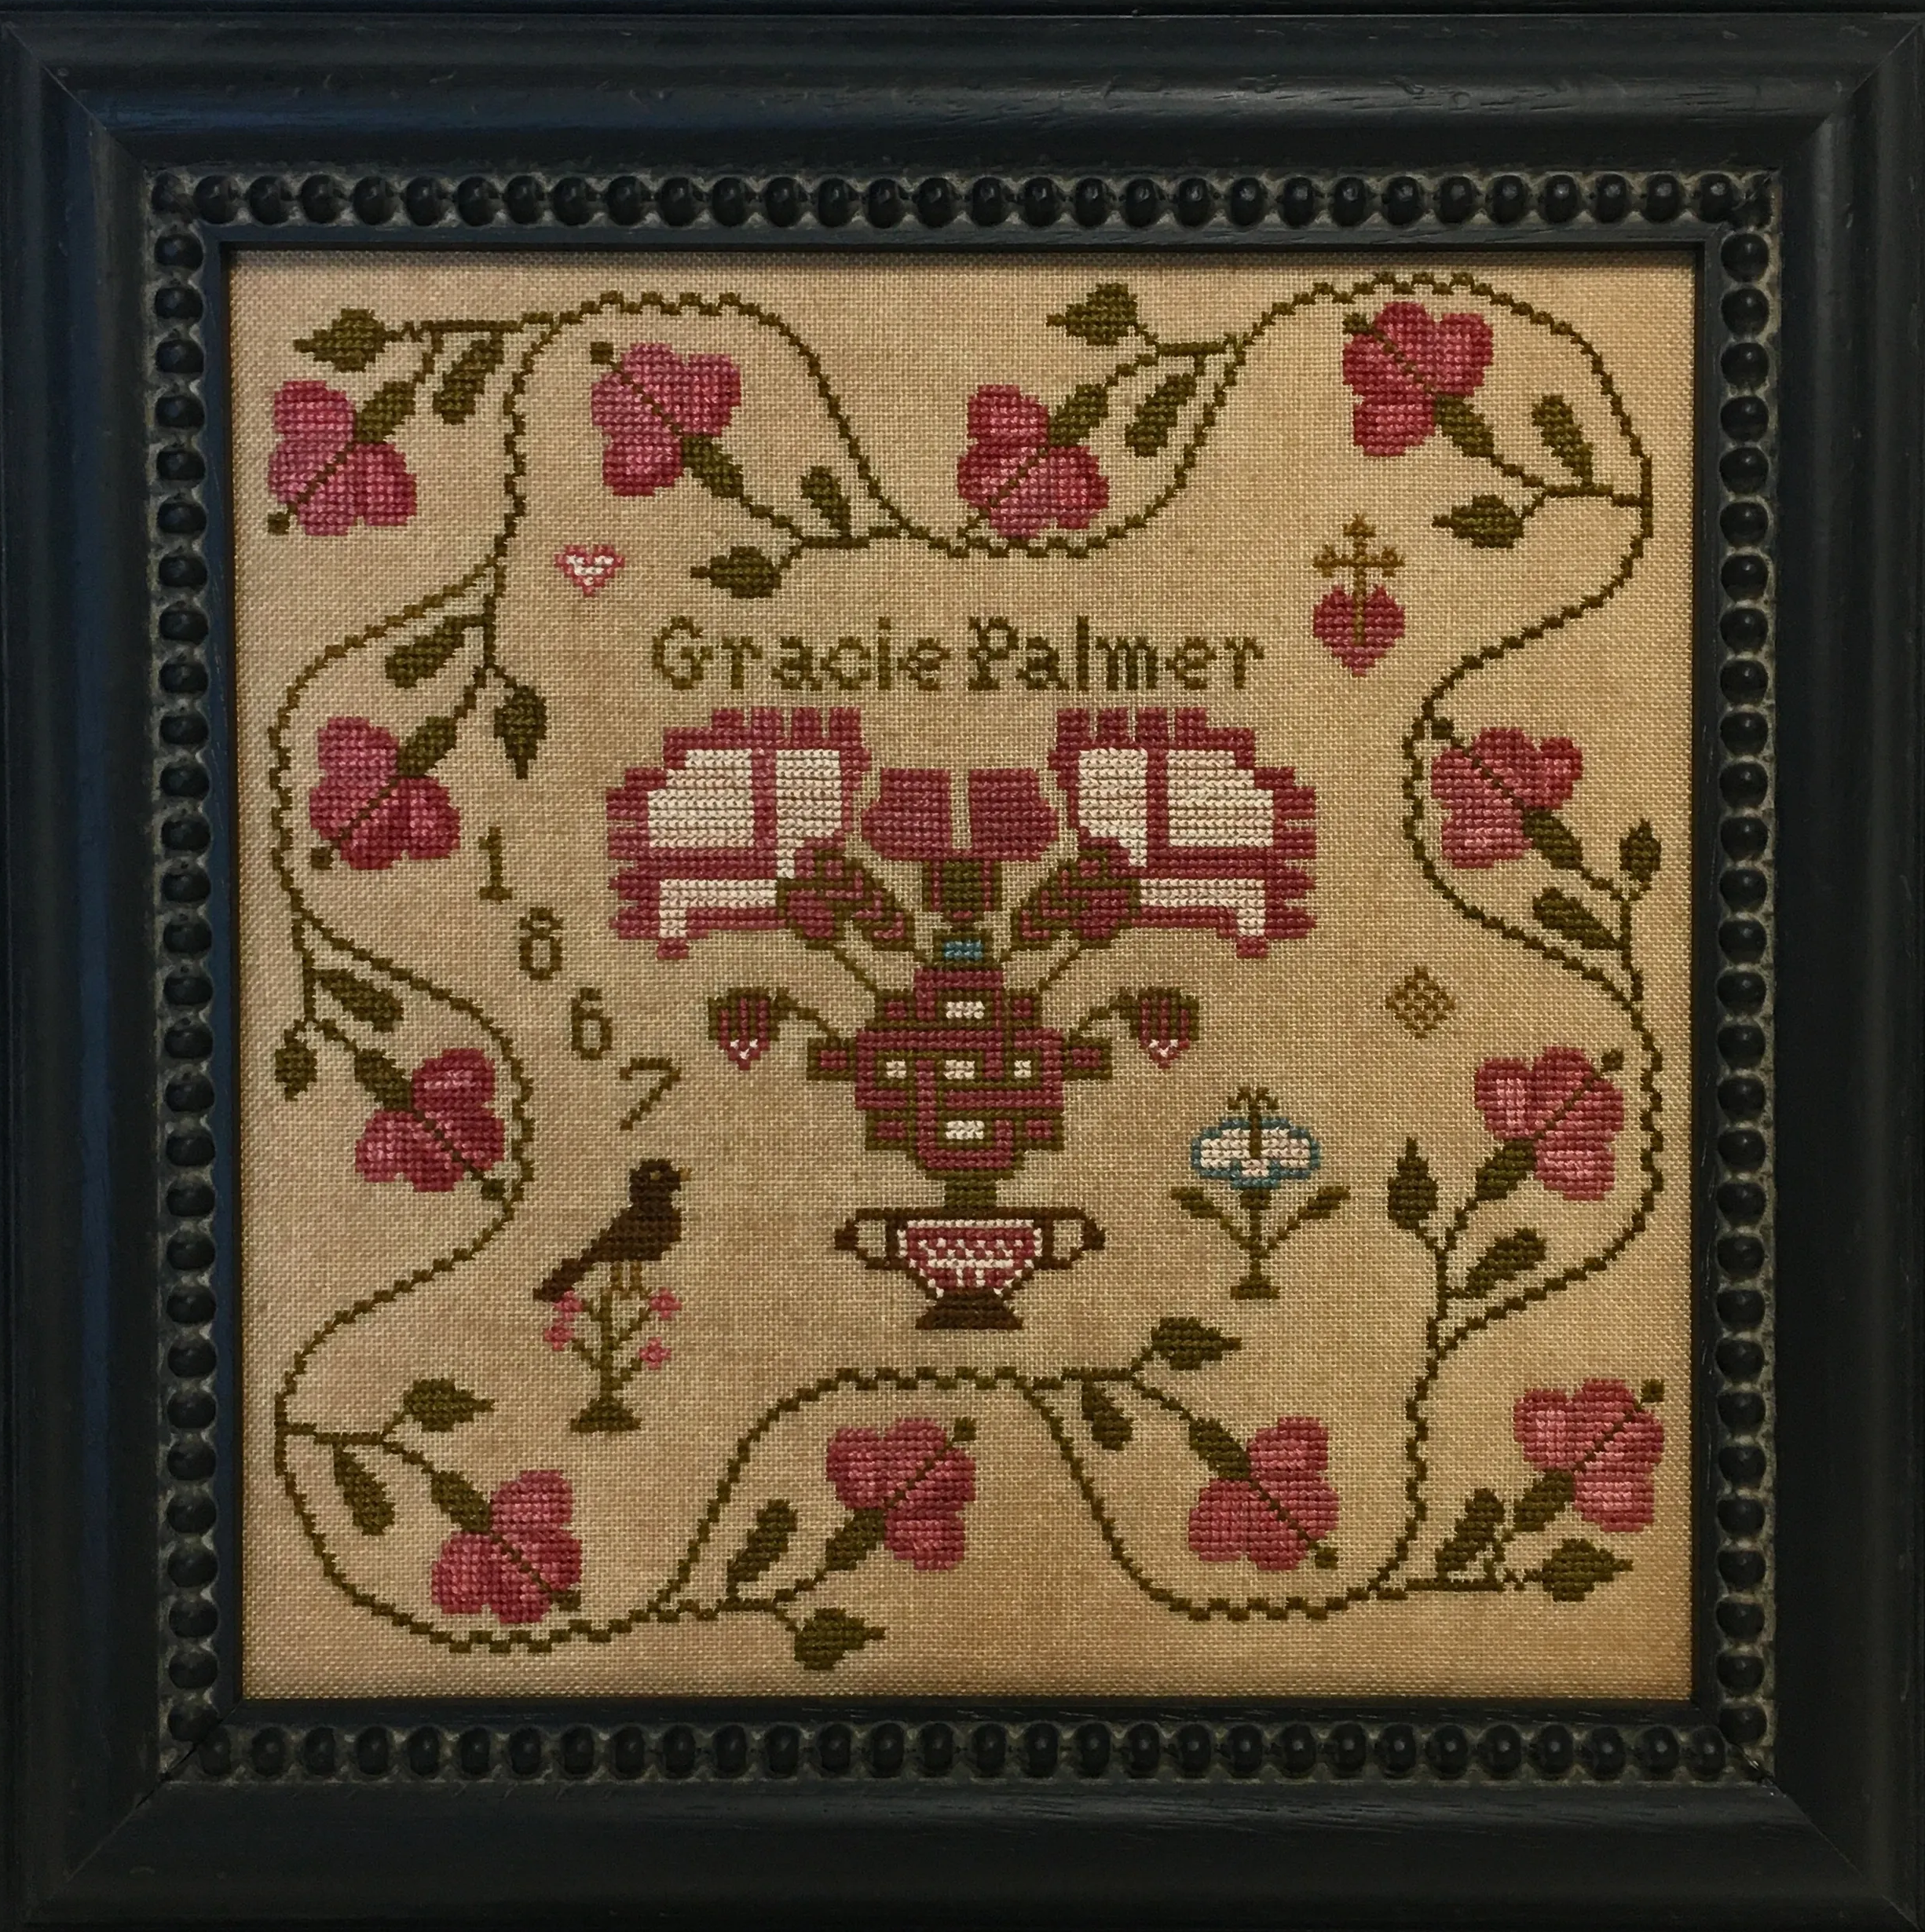 Gracie Palmer 1867 - Needlemade Designs